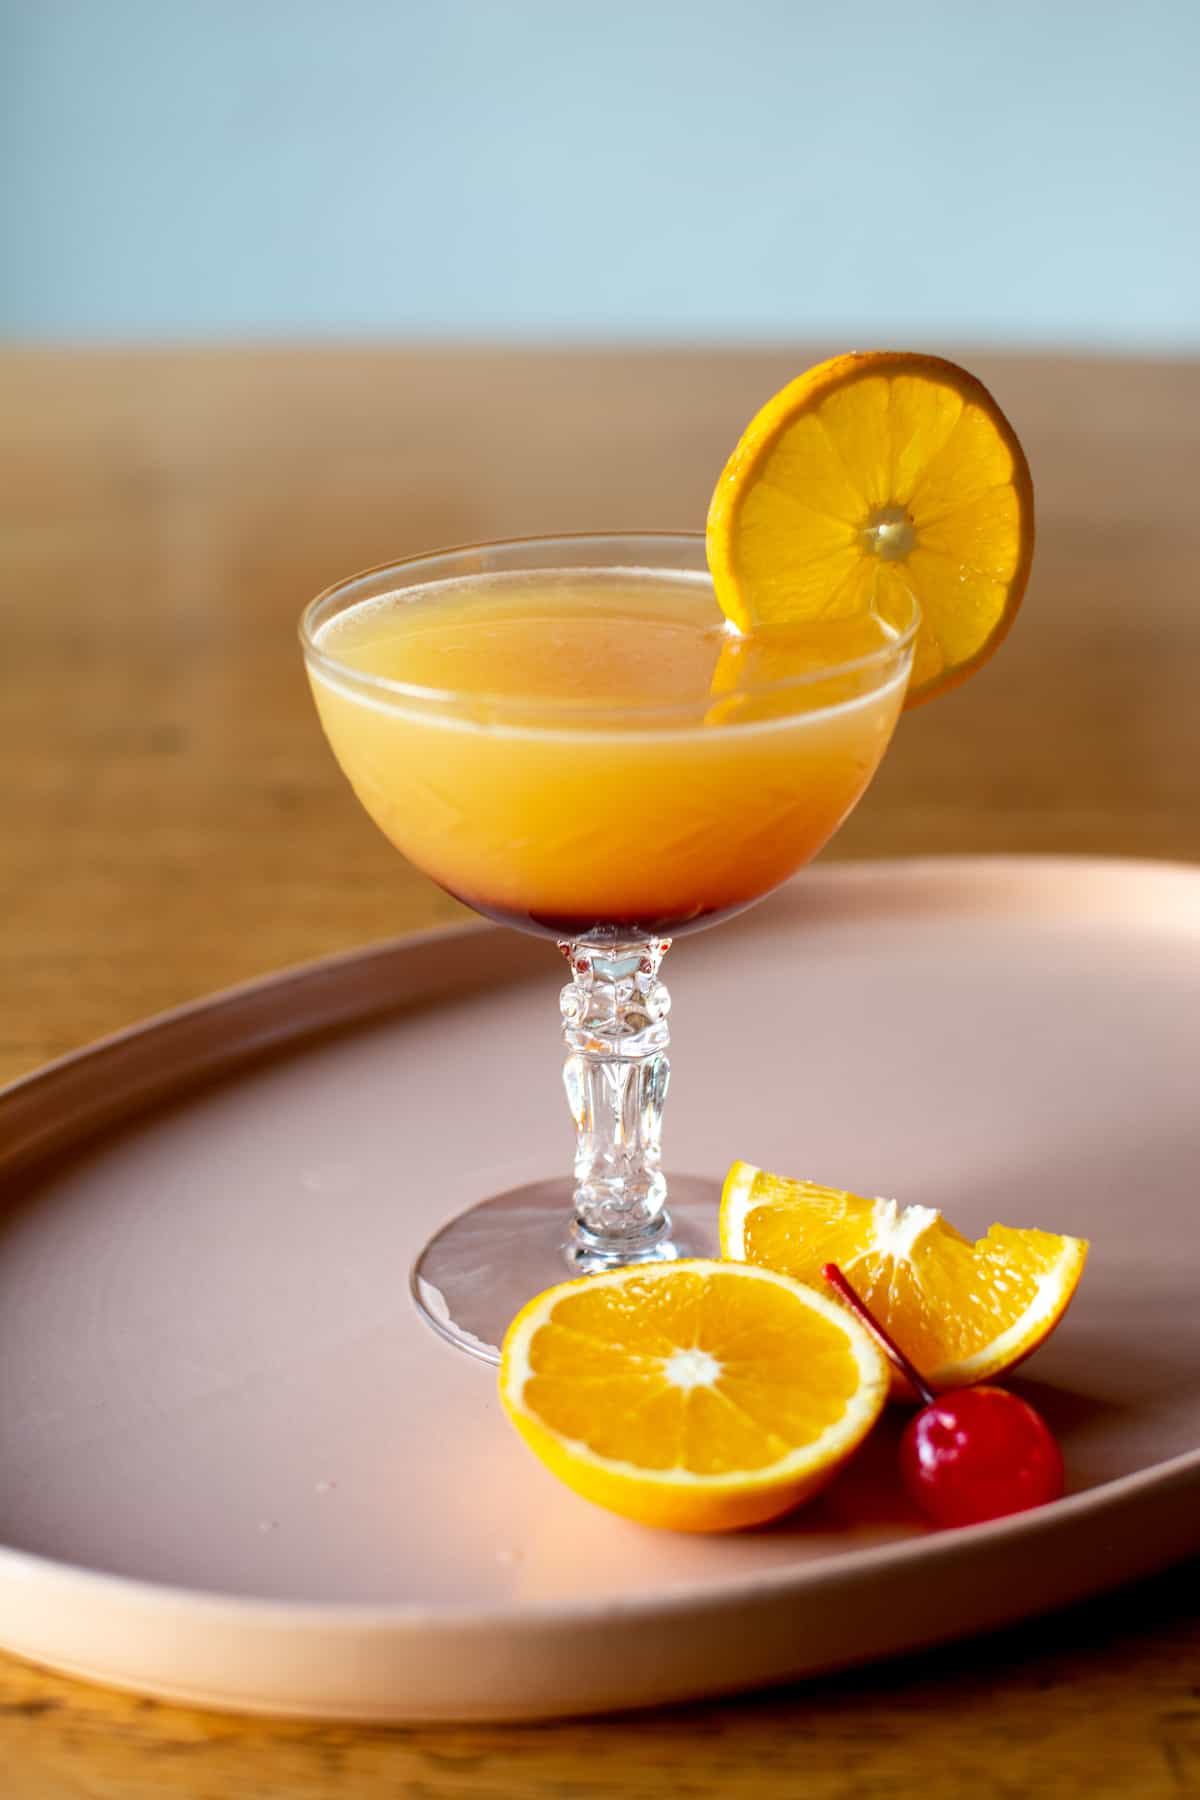 How to make a Tequila Sunrise cocktail with homemade grenadine using a simple combination of pomegranate juice, sugar, and orange peel. This simple cocktail makes a great brunch drink or easy-going sipper with tequila, orange juice and grenadine. #tequilasunrise #tequila #tequilacocktail #cagrown #ad